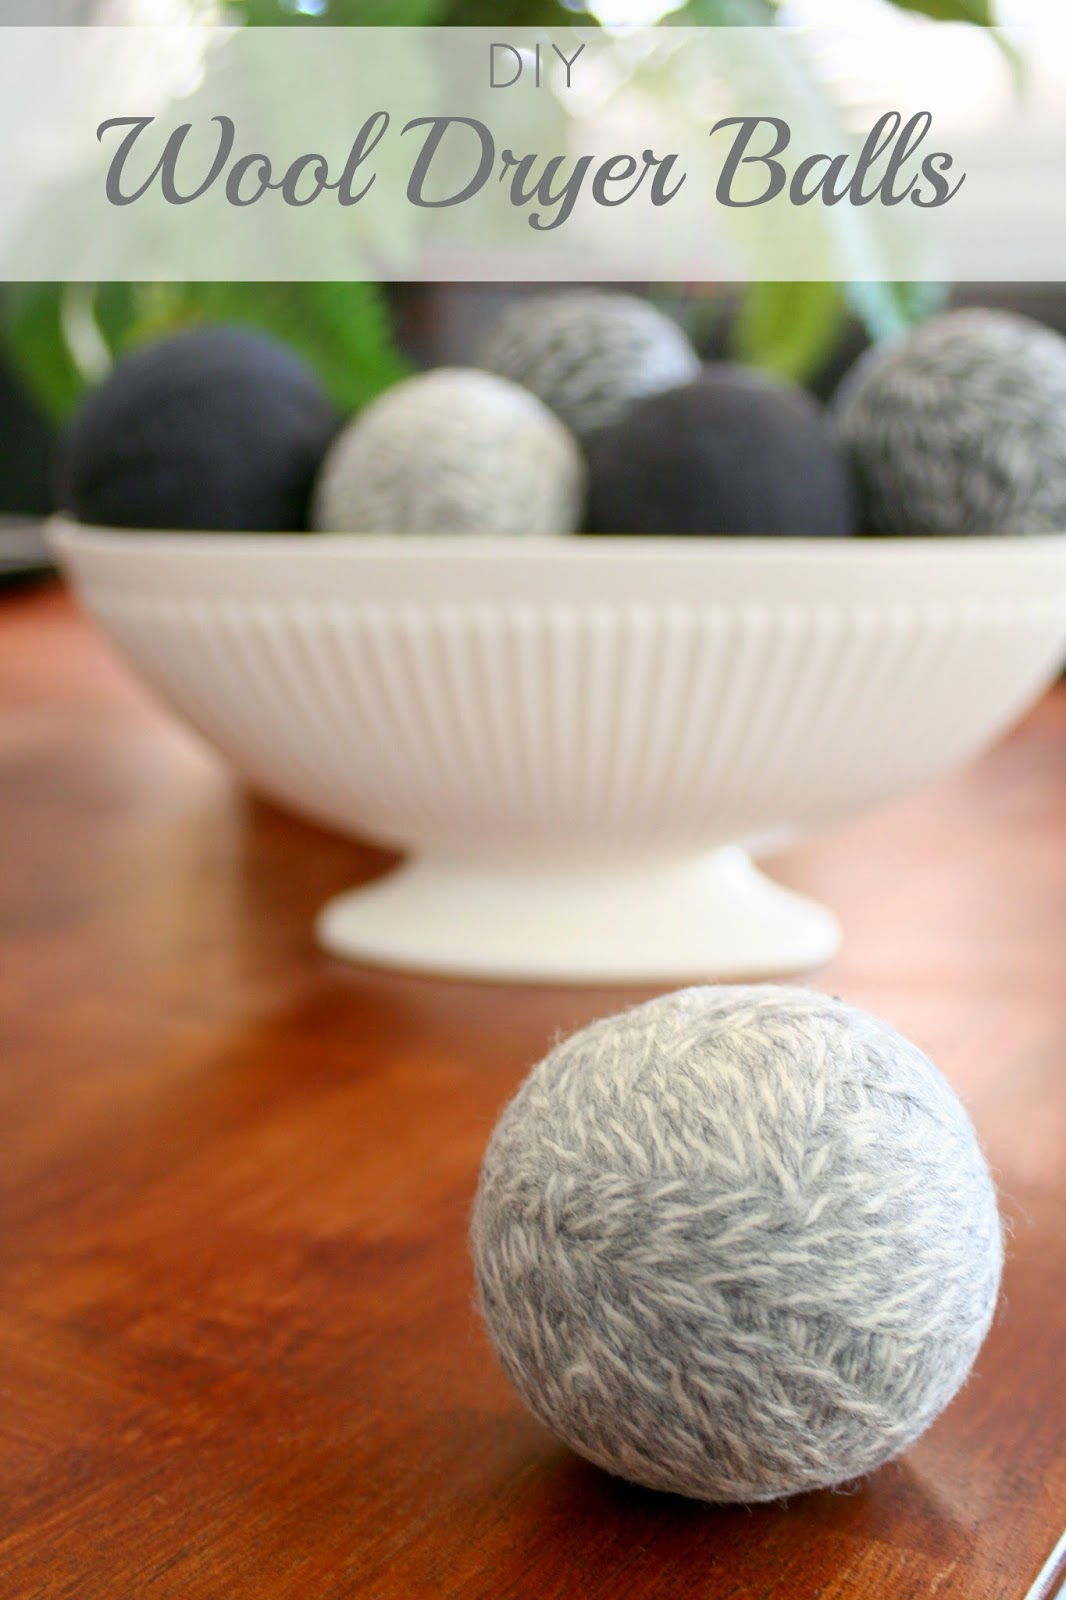 Wool Dryer Balls - easy to make and will cut the drying time of your laundry in half   jordanseasyentertaining.com